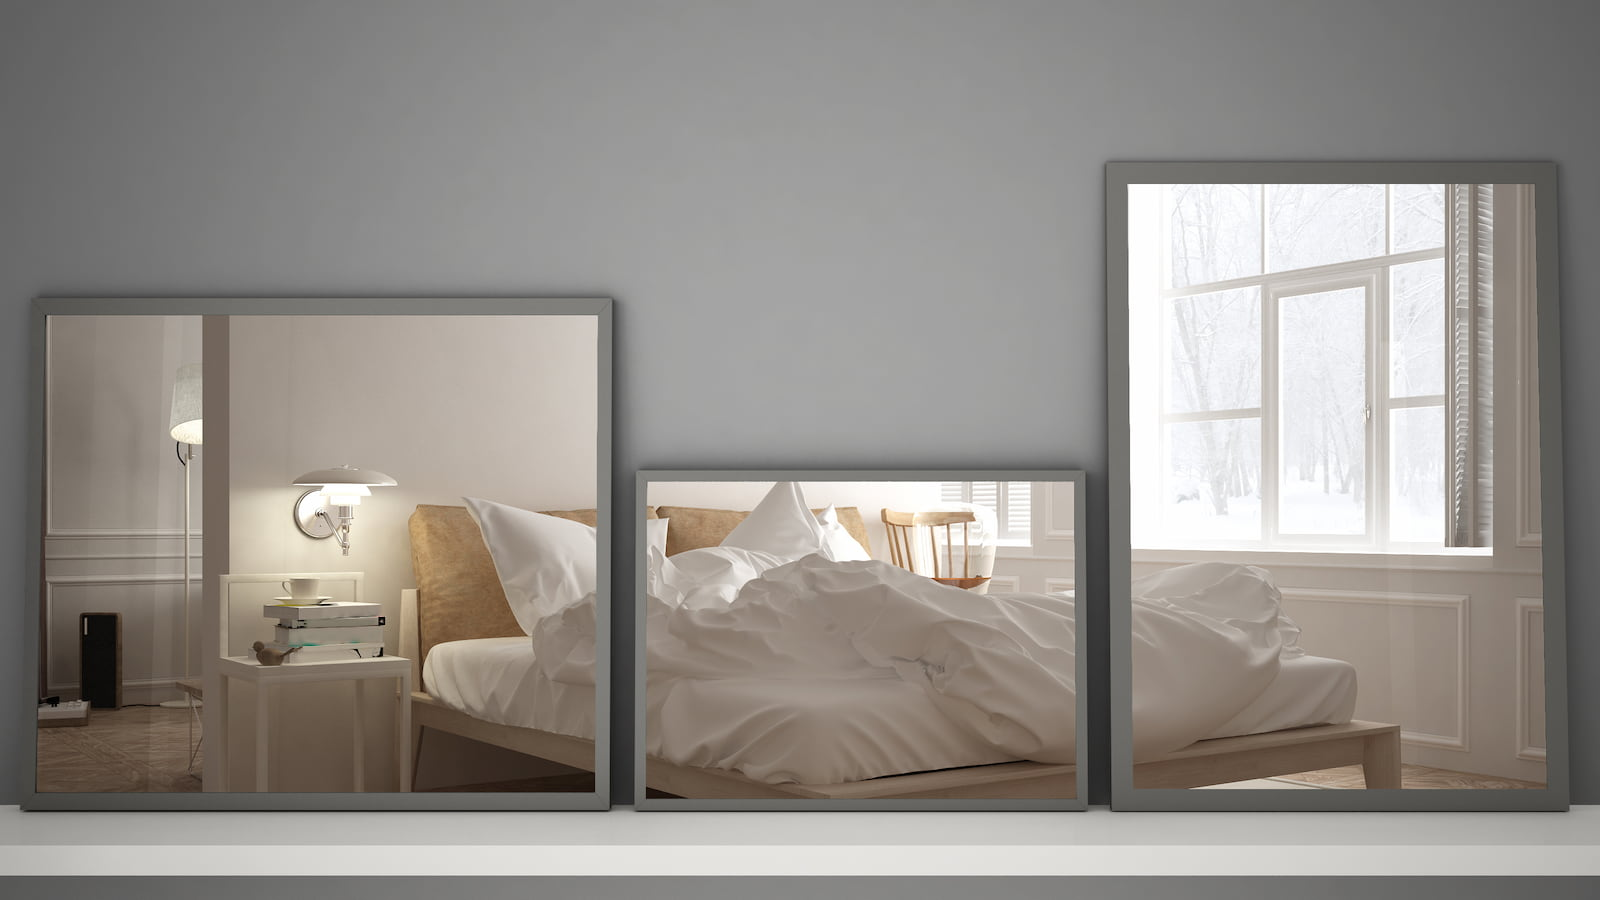 three mirrors reflect white bed and bedroom